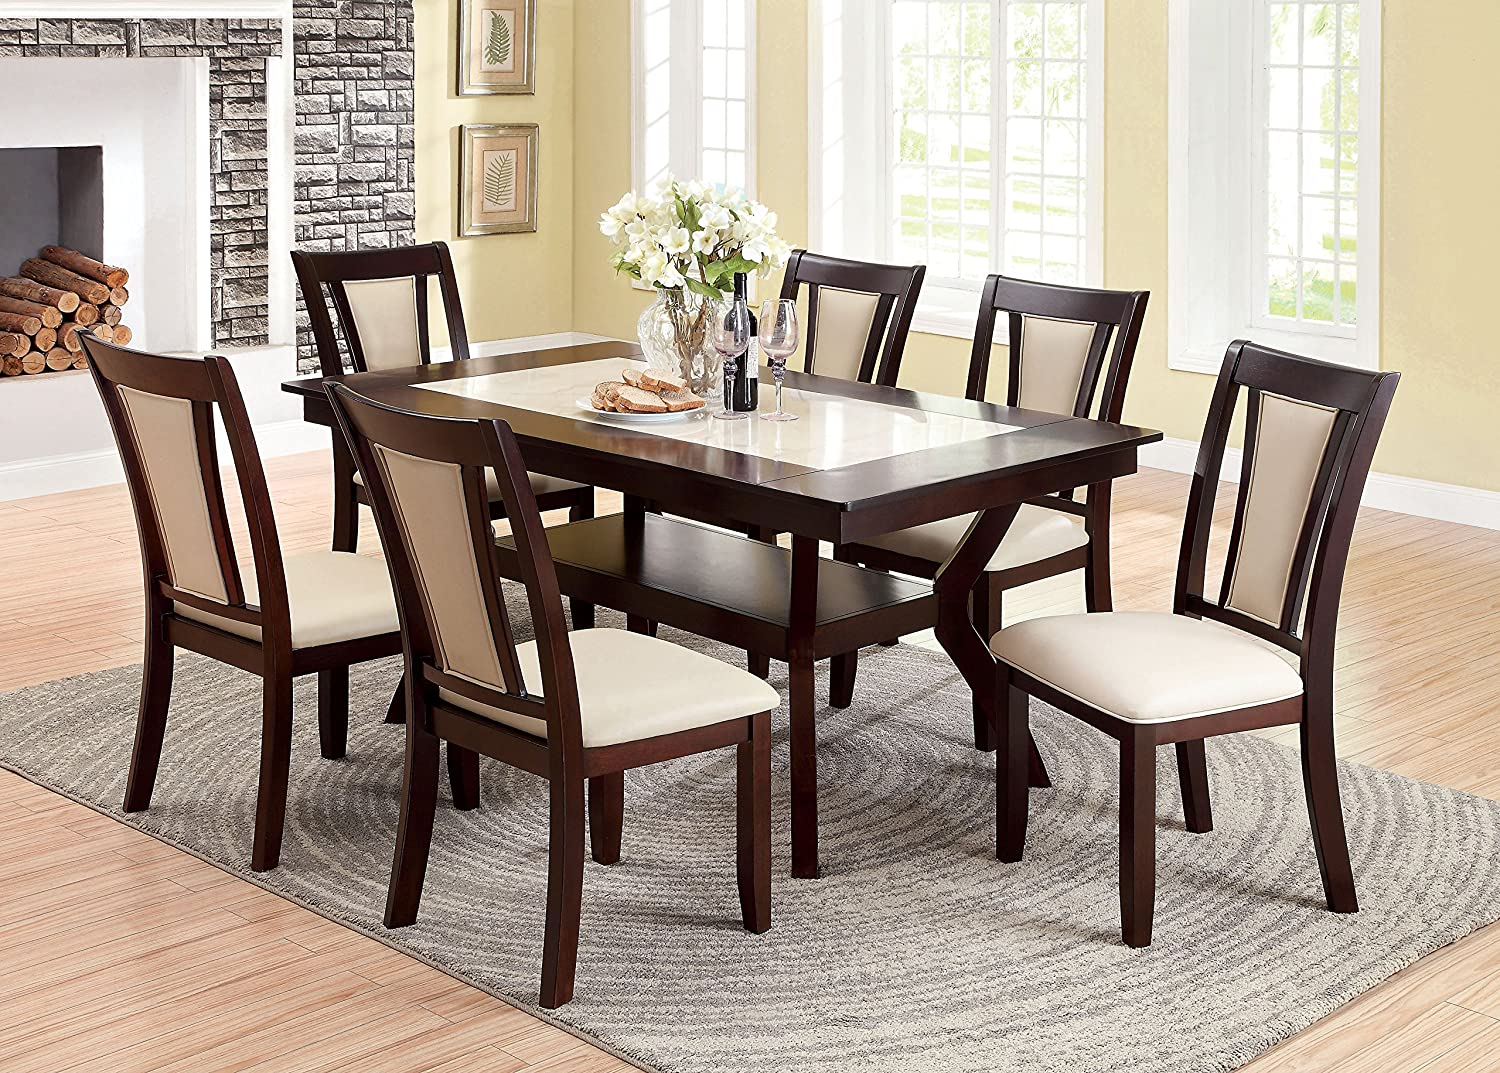 Amazon.com: Furniture Of America Dalcroze 7 Piece Modern Faux Marble Top Dining  Set, Dark Cherry: Kitchen U0026 Dining